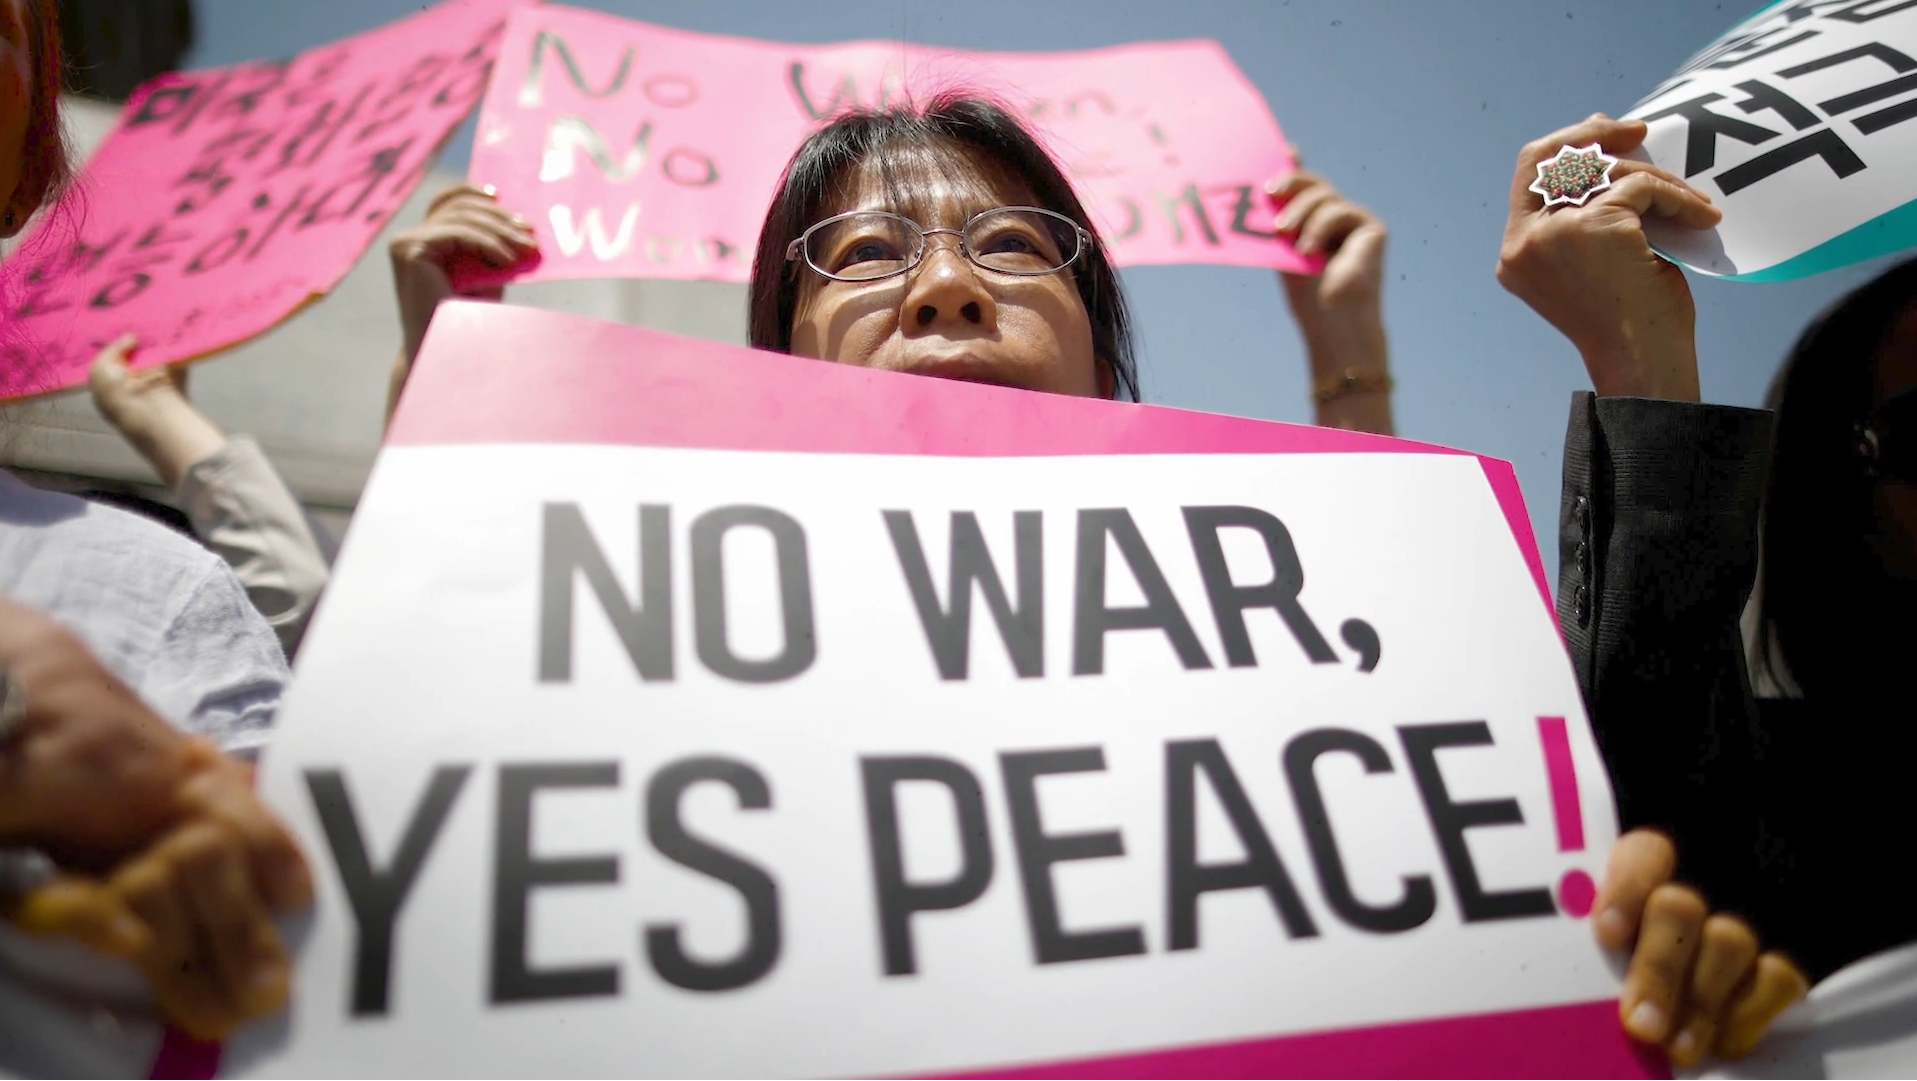 VIDEO: Why Women Need to Be Part of the Korea Peace Process